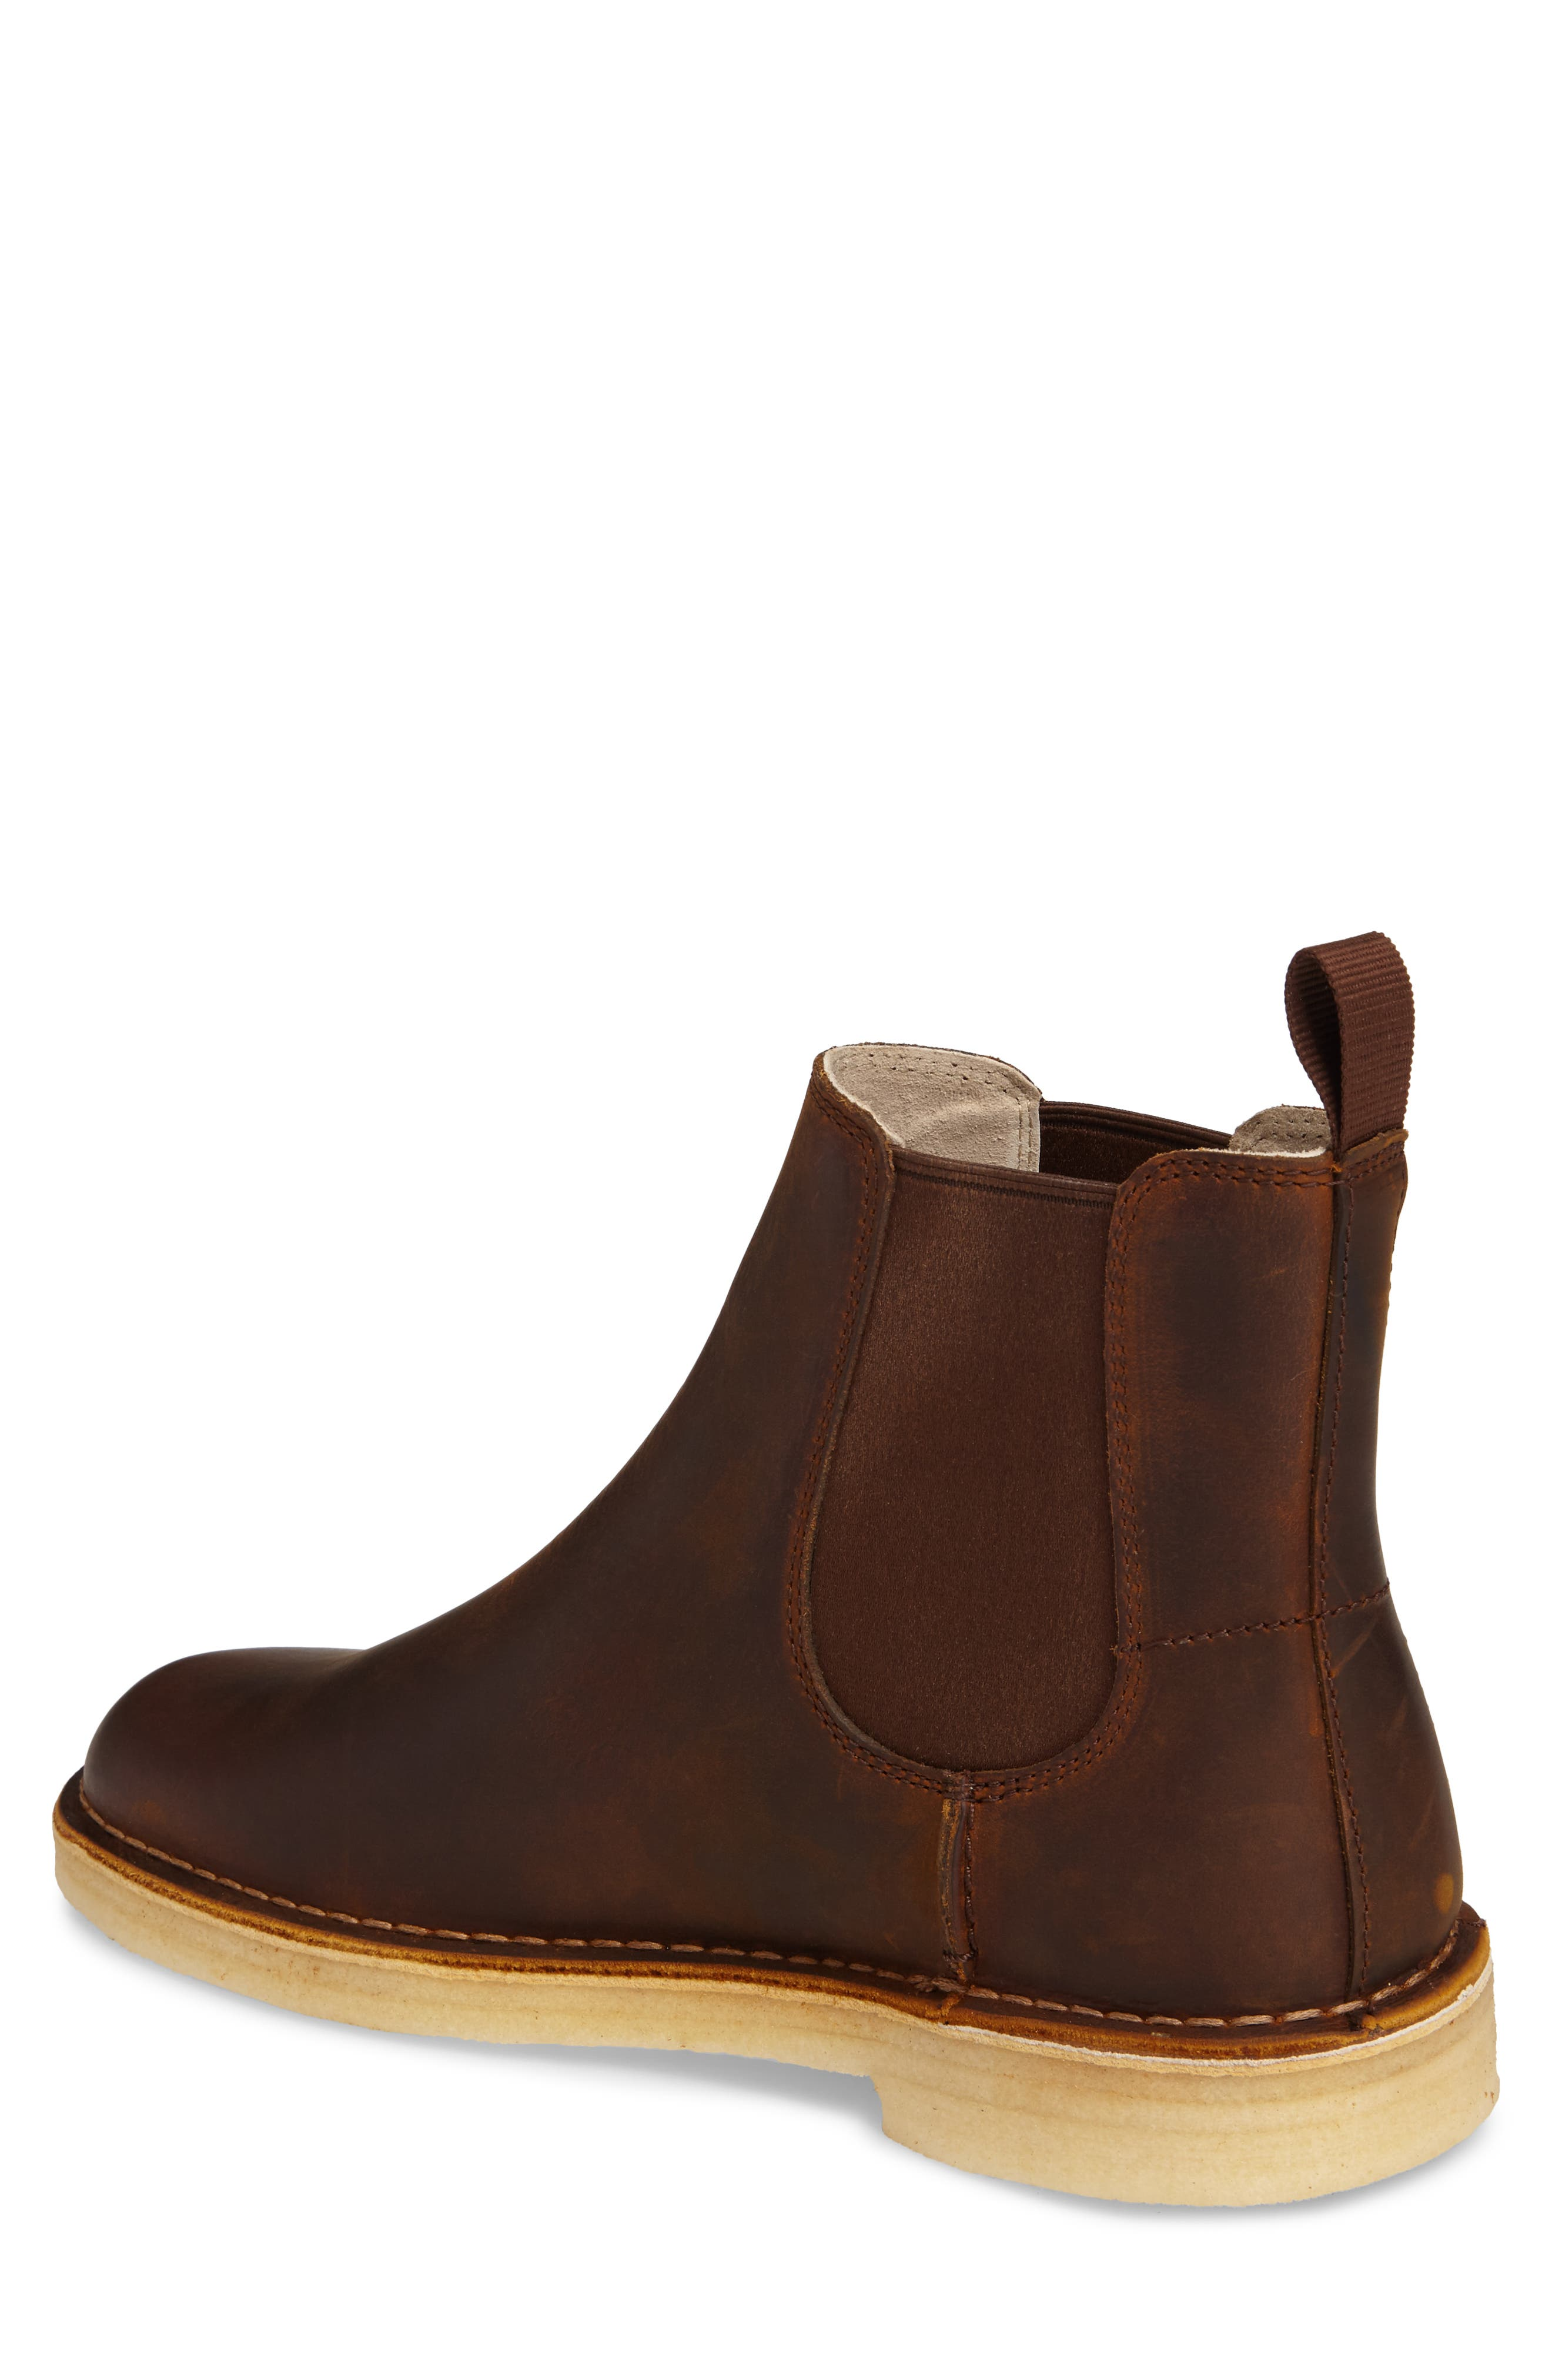 CLARKS<SUP>®</SUP>,                             Desert Peak Chelsea Boot,                             Alternate thumbnail 2, color,                             MEDIUM BROWN BEESWAX LEATHER